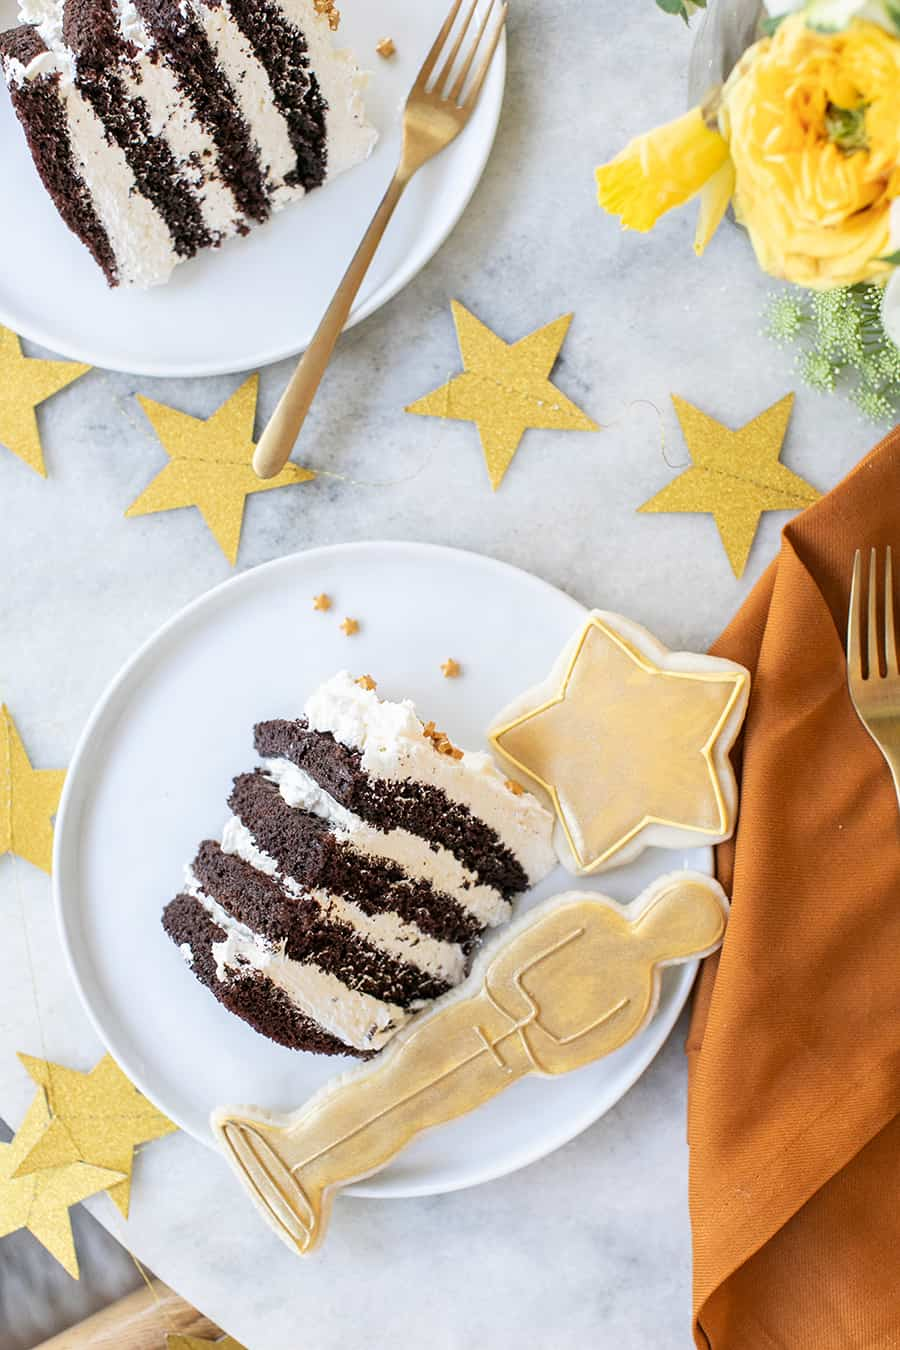 Oscar party tuxedo cake on white plate with cookies.